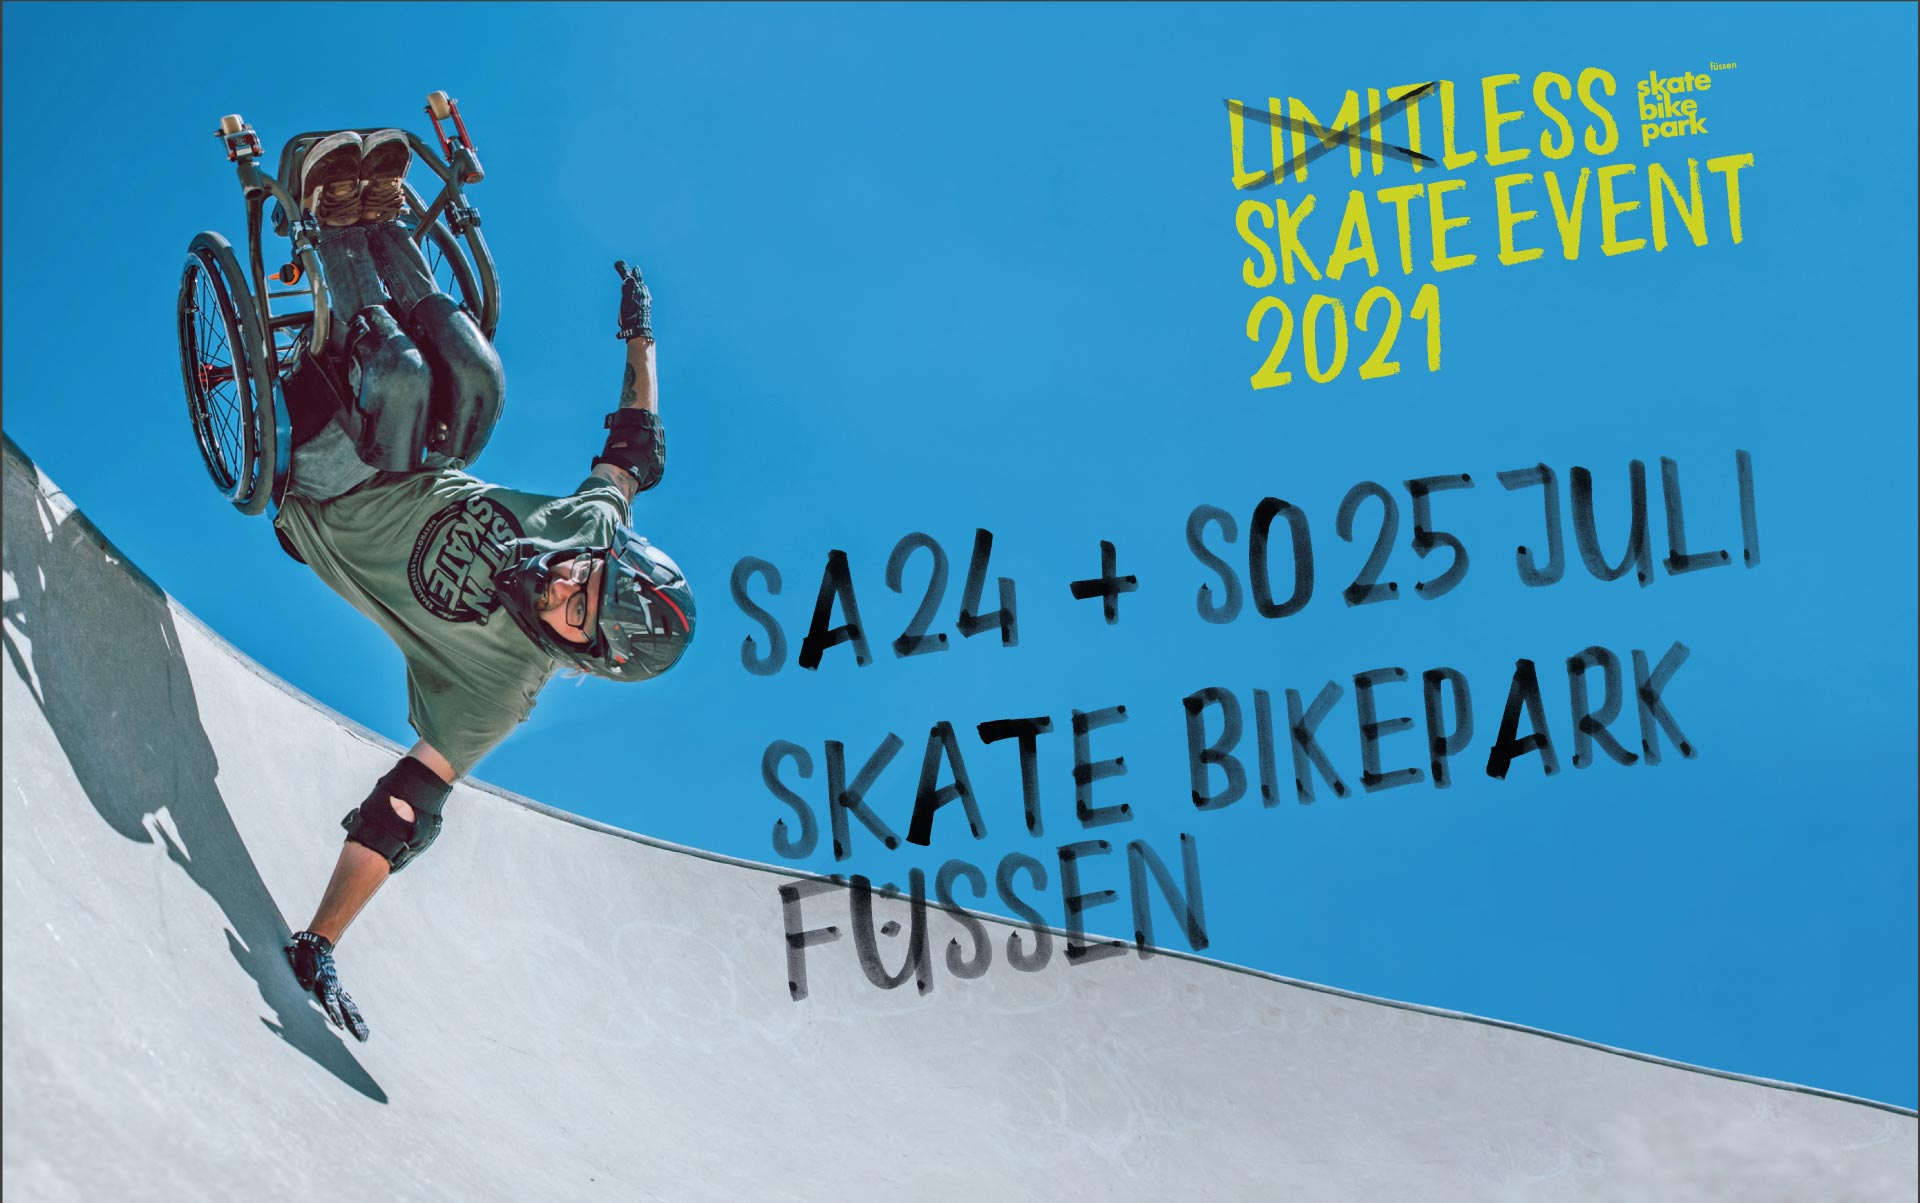 limitless skate event 2021